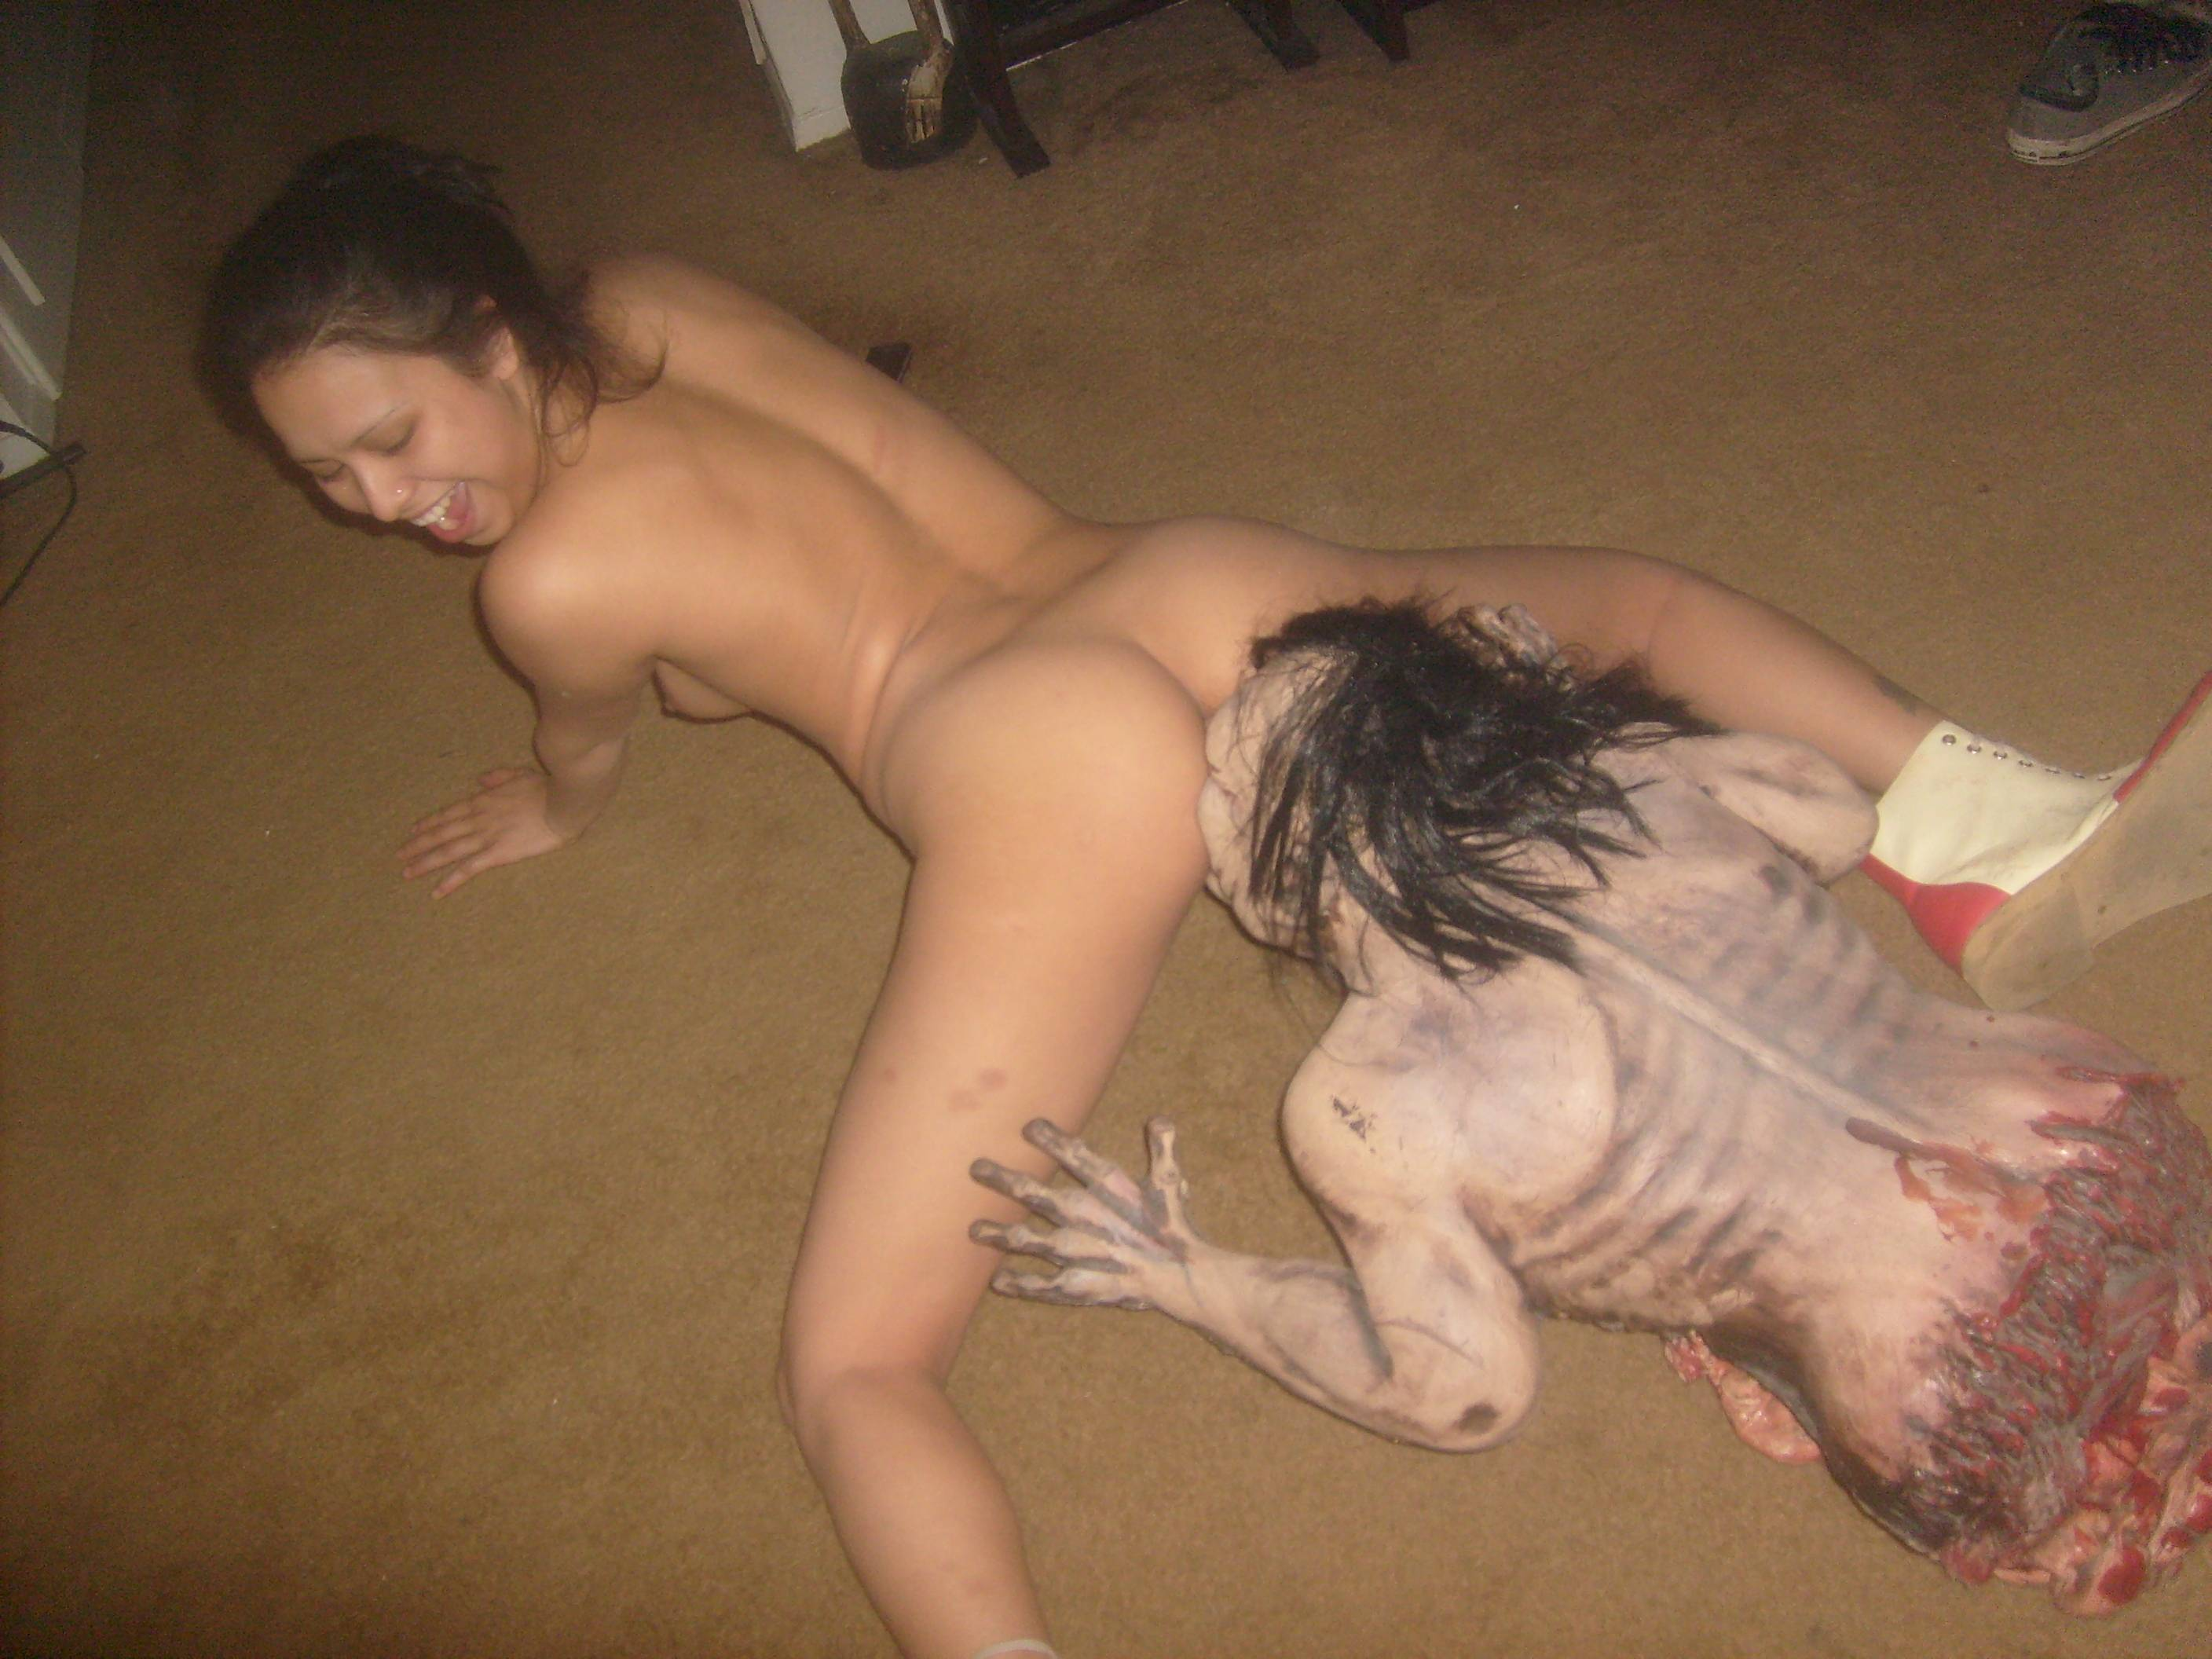 Zombie xxx with woman mp adult pic